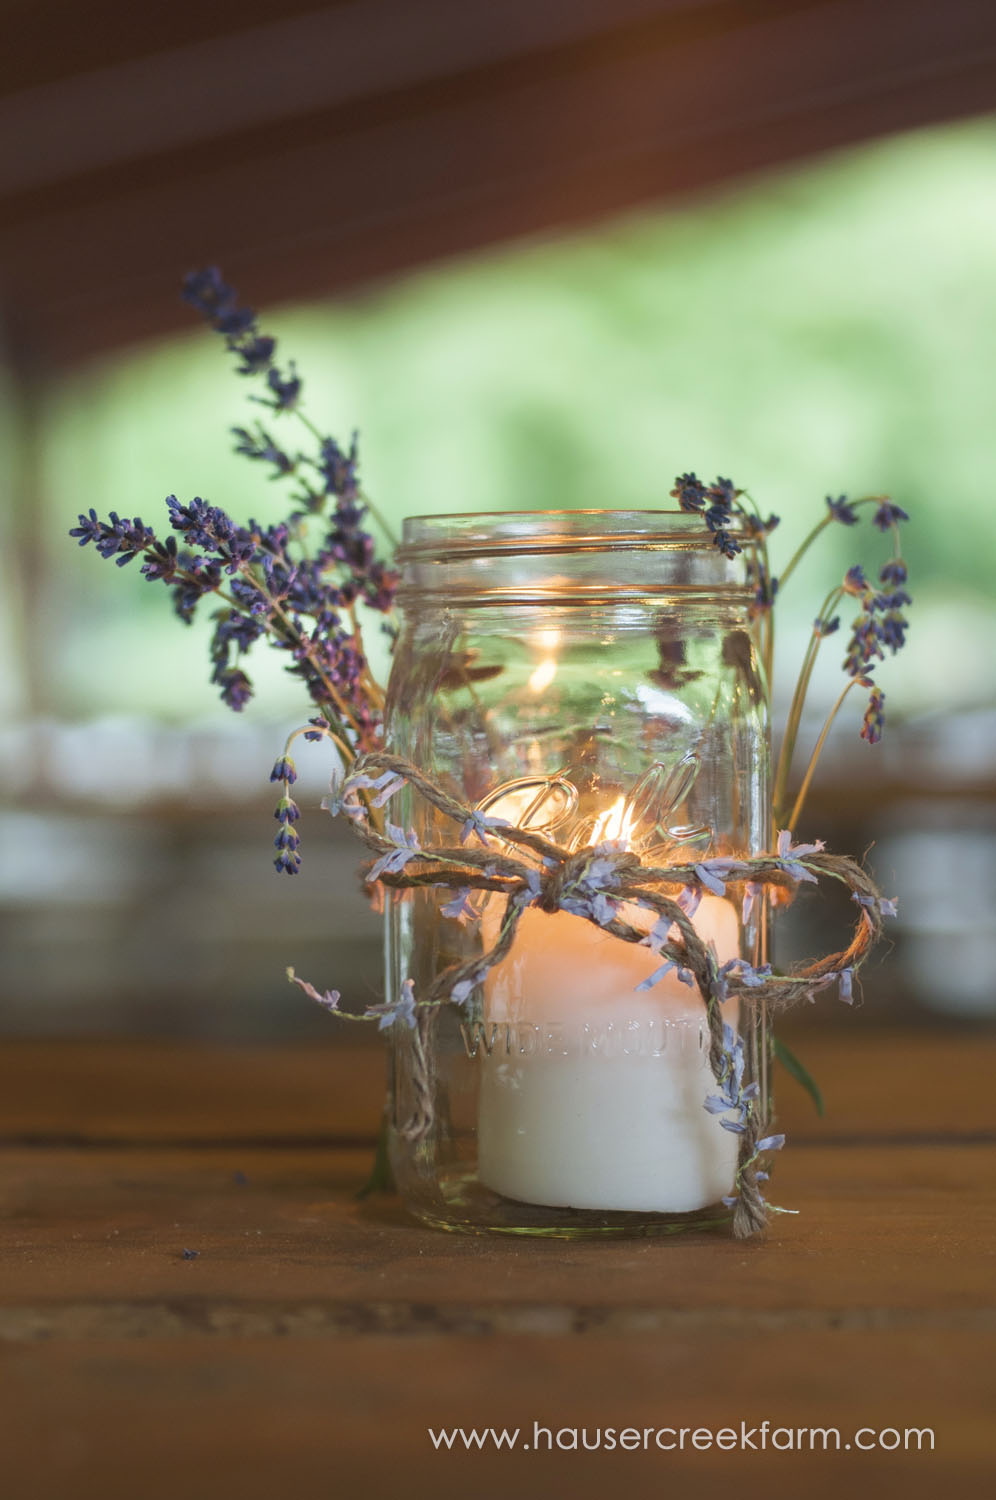 lavender-with-candle-in-jar-for-farm-wedding-a-photo-by-ashley-0916.jpg